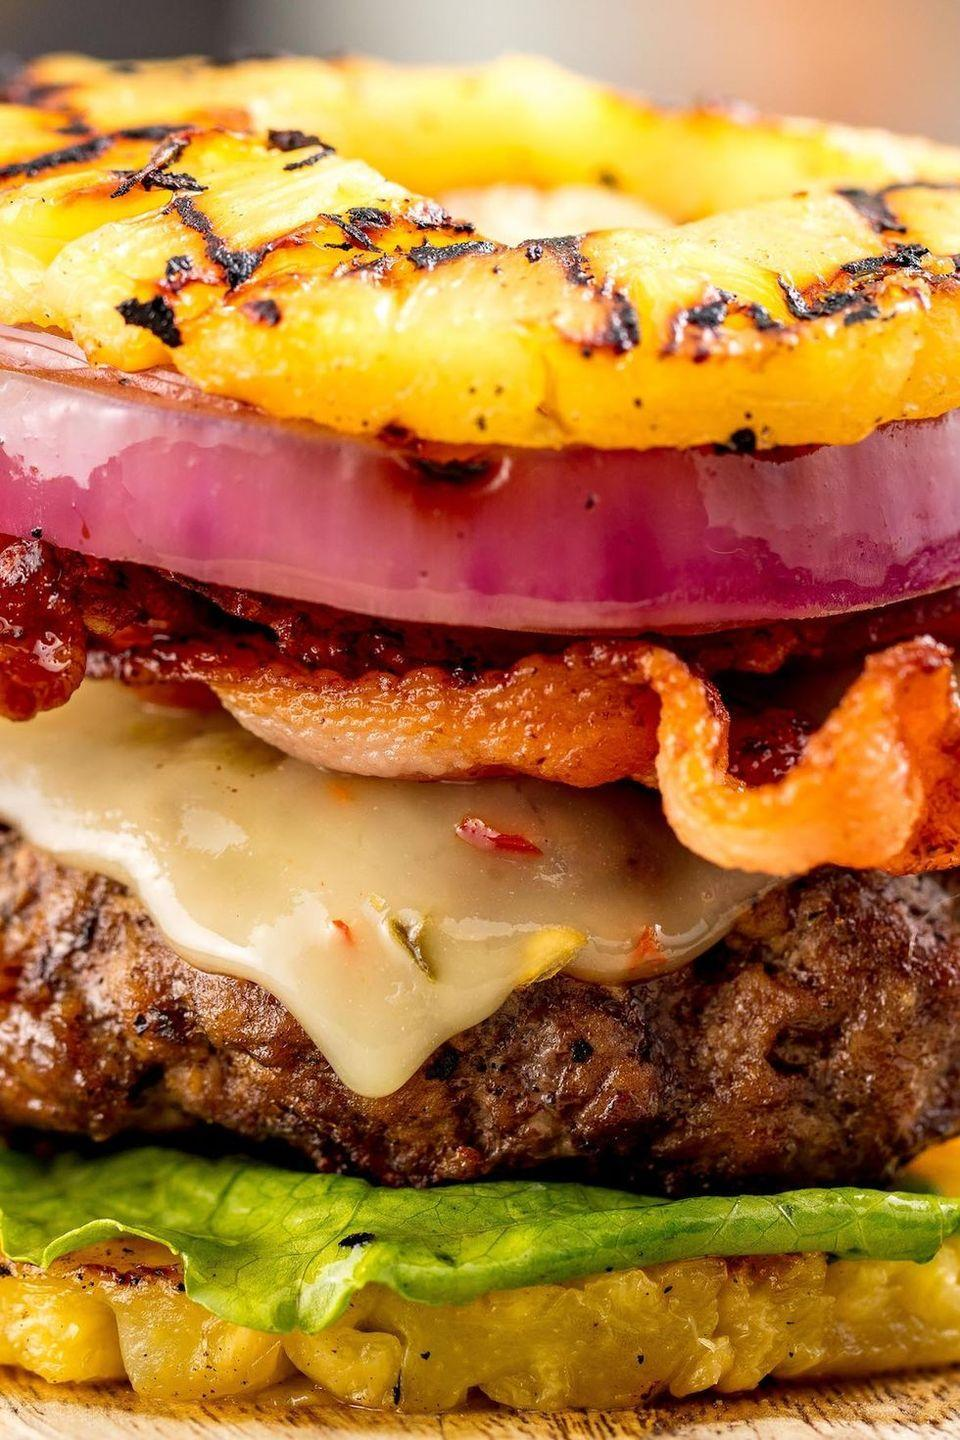 """<p><a href=""""https://www.delish.com/uk/cooking/recipes/a28924339/best-burger-recipe/"""" rel=""""nofollow noopener"""" target=""""_blank"""" data-ylk=""""slk:Burgers"""" class=""""link rapid-noclick-resp"""">Burgers</a> get a tropical — and low carb! — makeover when slices of charred pineapple replace the buns.</p><p>Get the <a href=""""https://www.delish.com/uk/cooking/recipes/a30312260/pineapple-bun-burgers-recipe/"""" rel=""""nofollow noopener"""" target=""""_blank"""" data-ylk=""""slk:Pineapple Bun Burger"""" class=""""link rapid-noclick-resp"""">Pineapple Bun Burger</a> recipe.</p>"""